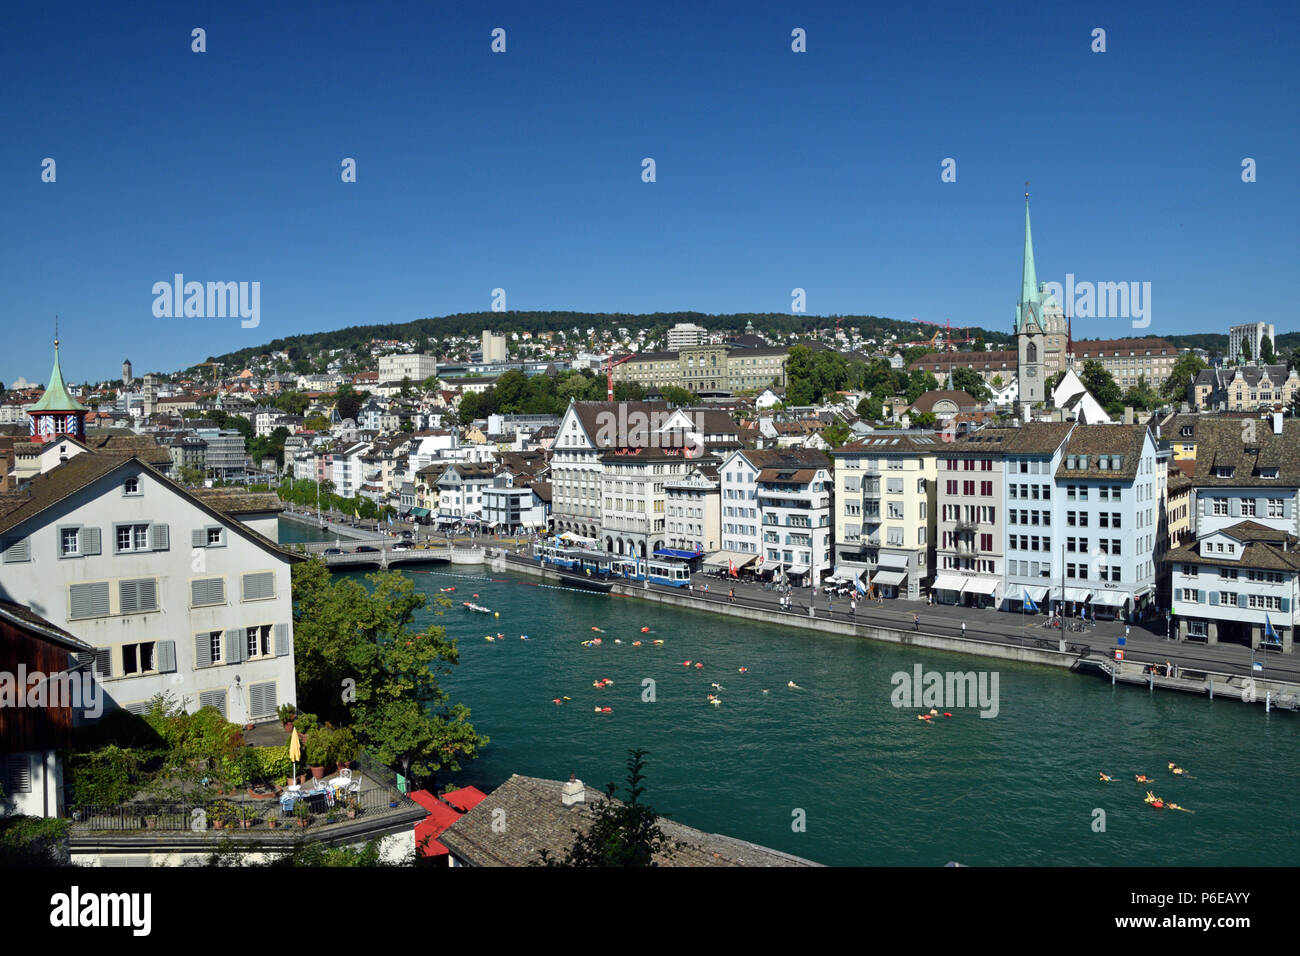 River view of Zurich - Stock Image